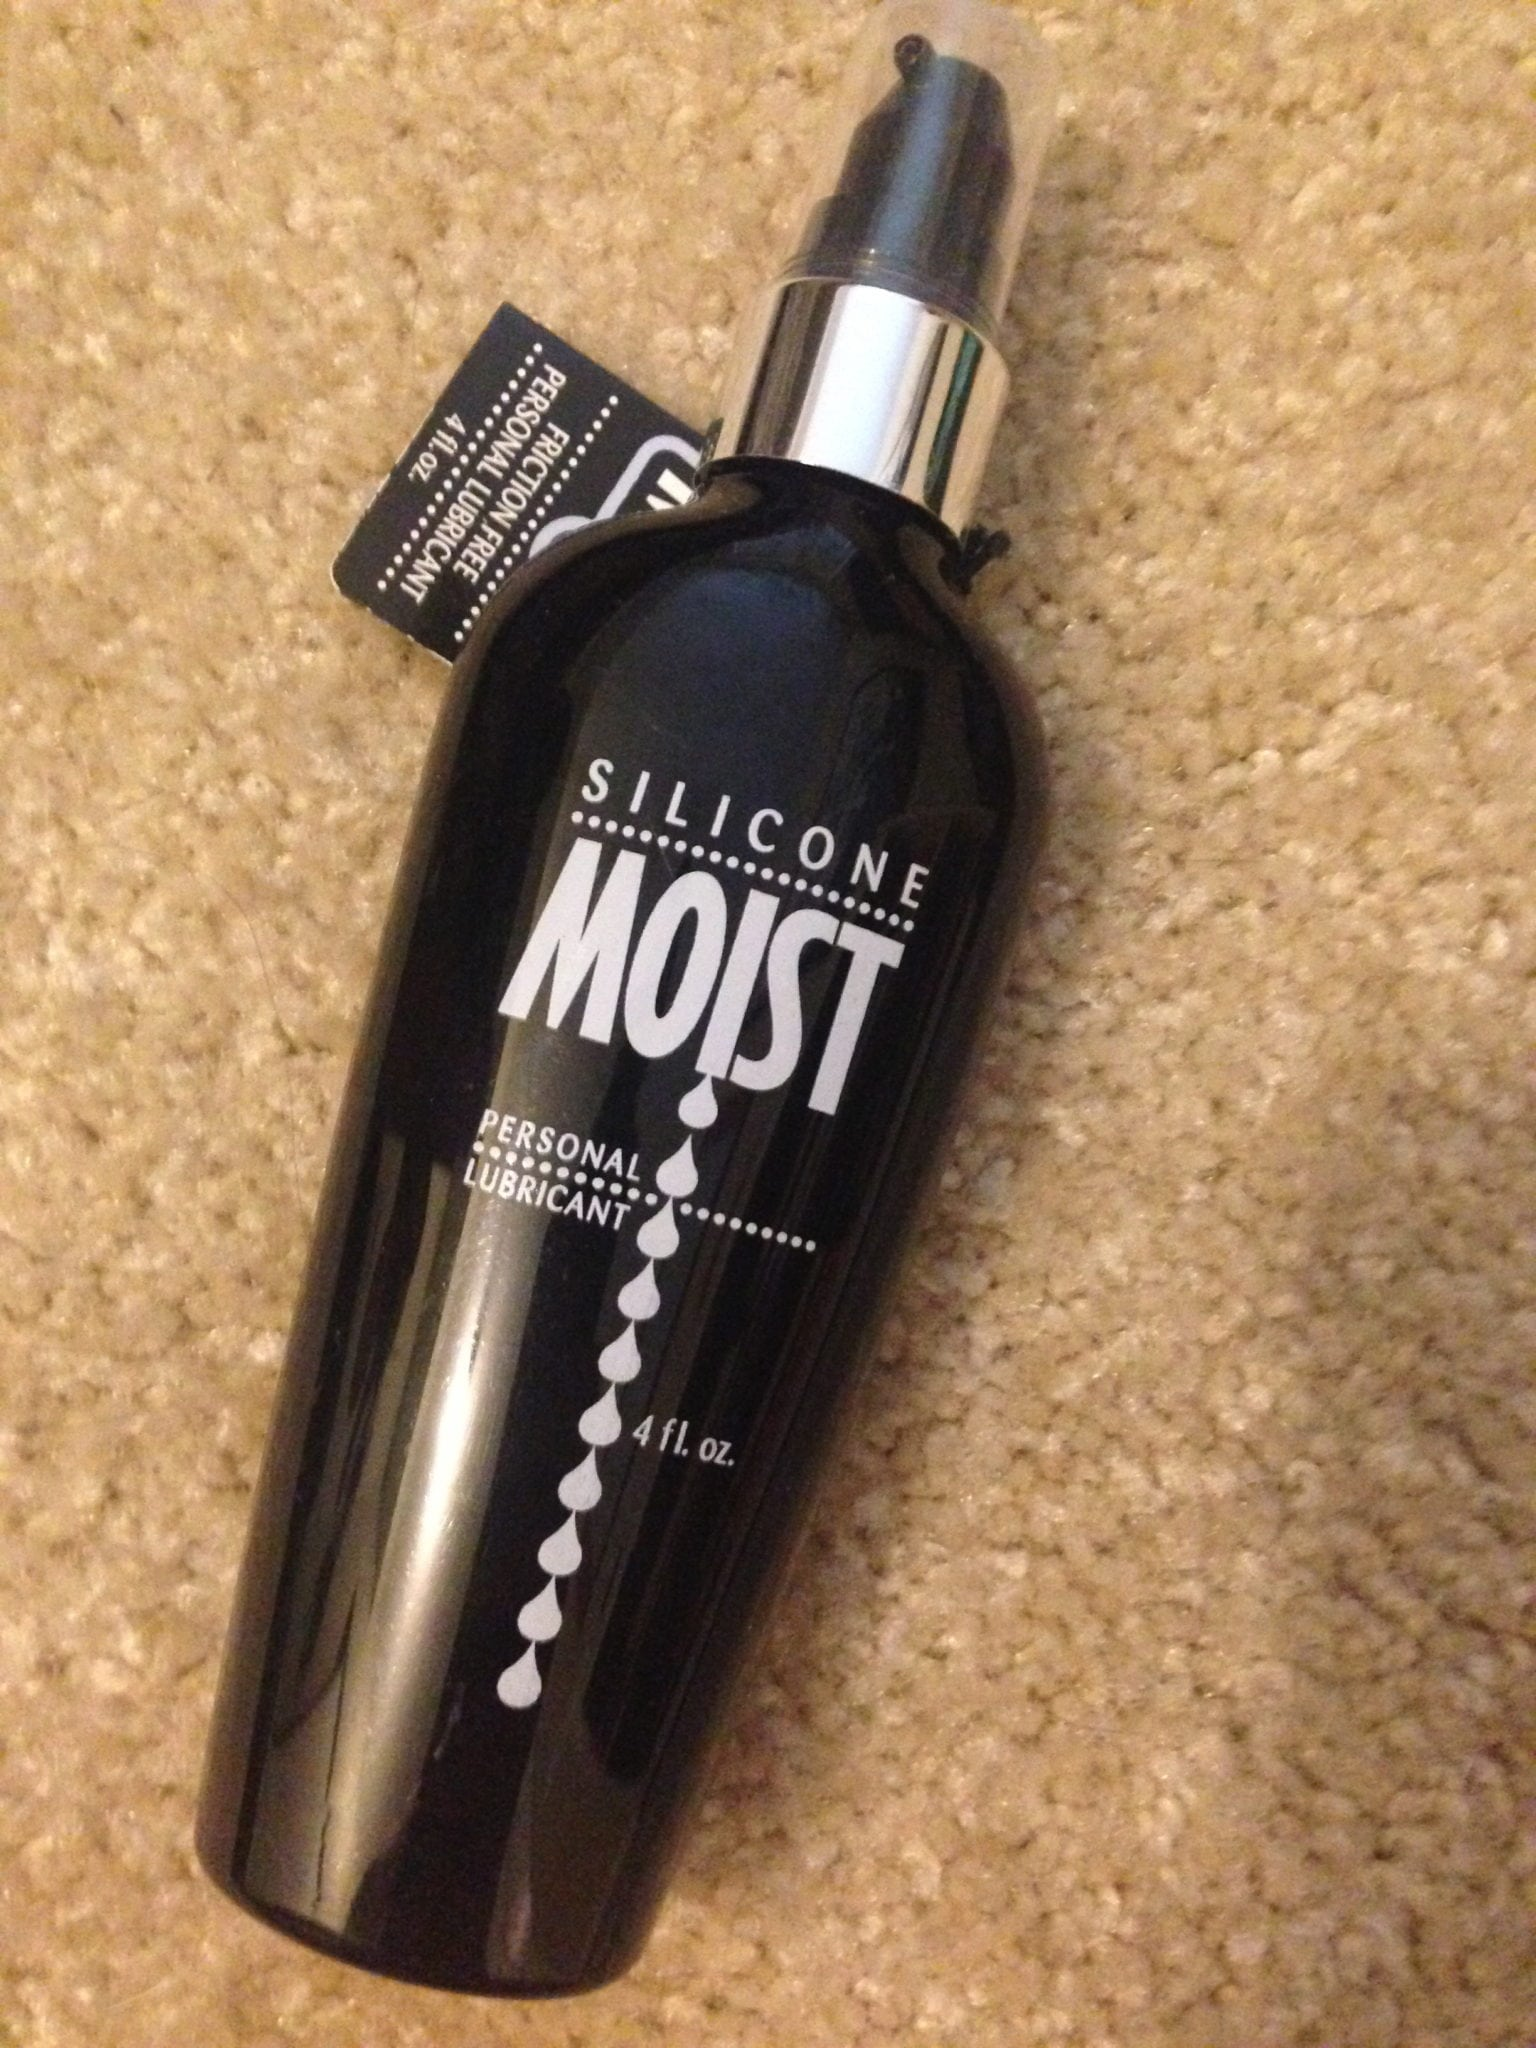 Moist Silicone Review